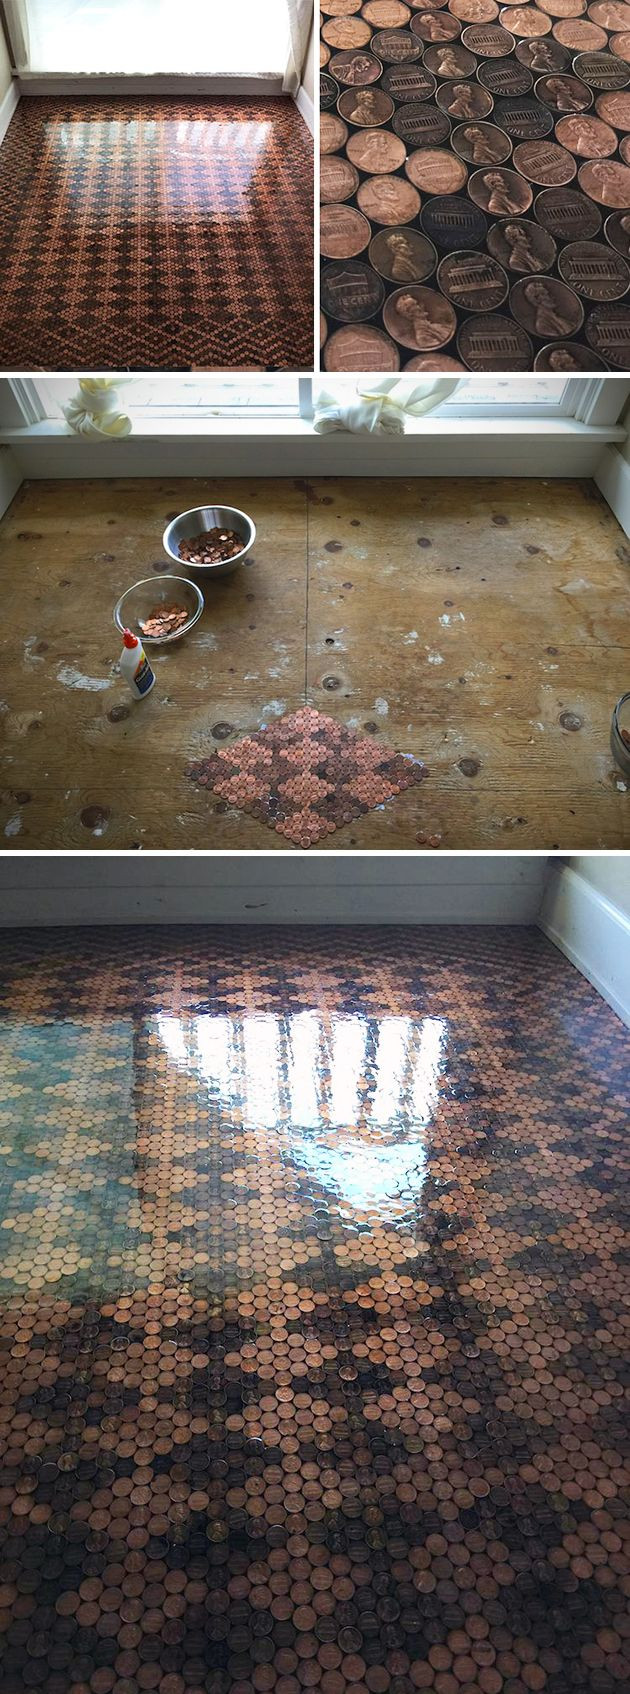 Best ideas about DIY Penny Floor . Save or Pin Best 25 Penny flooring ideas on Pinterest Now.